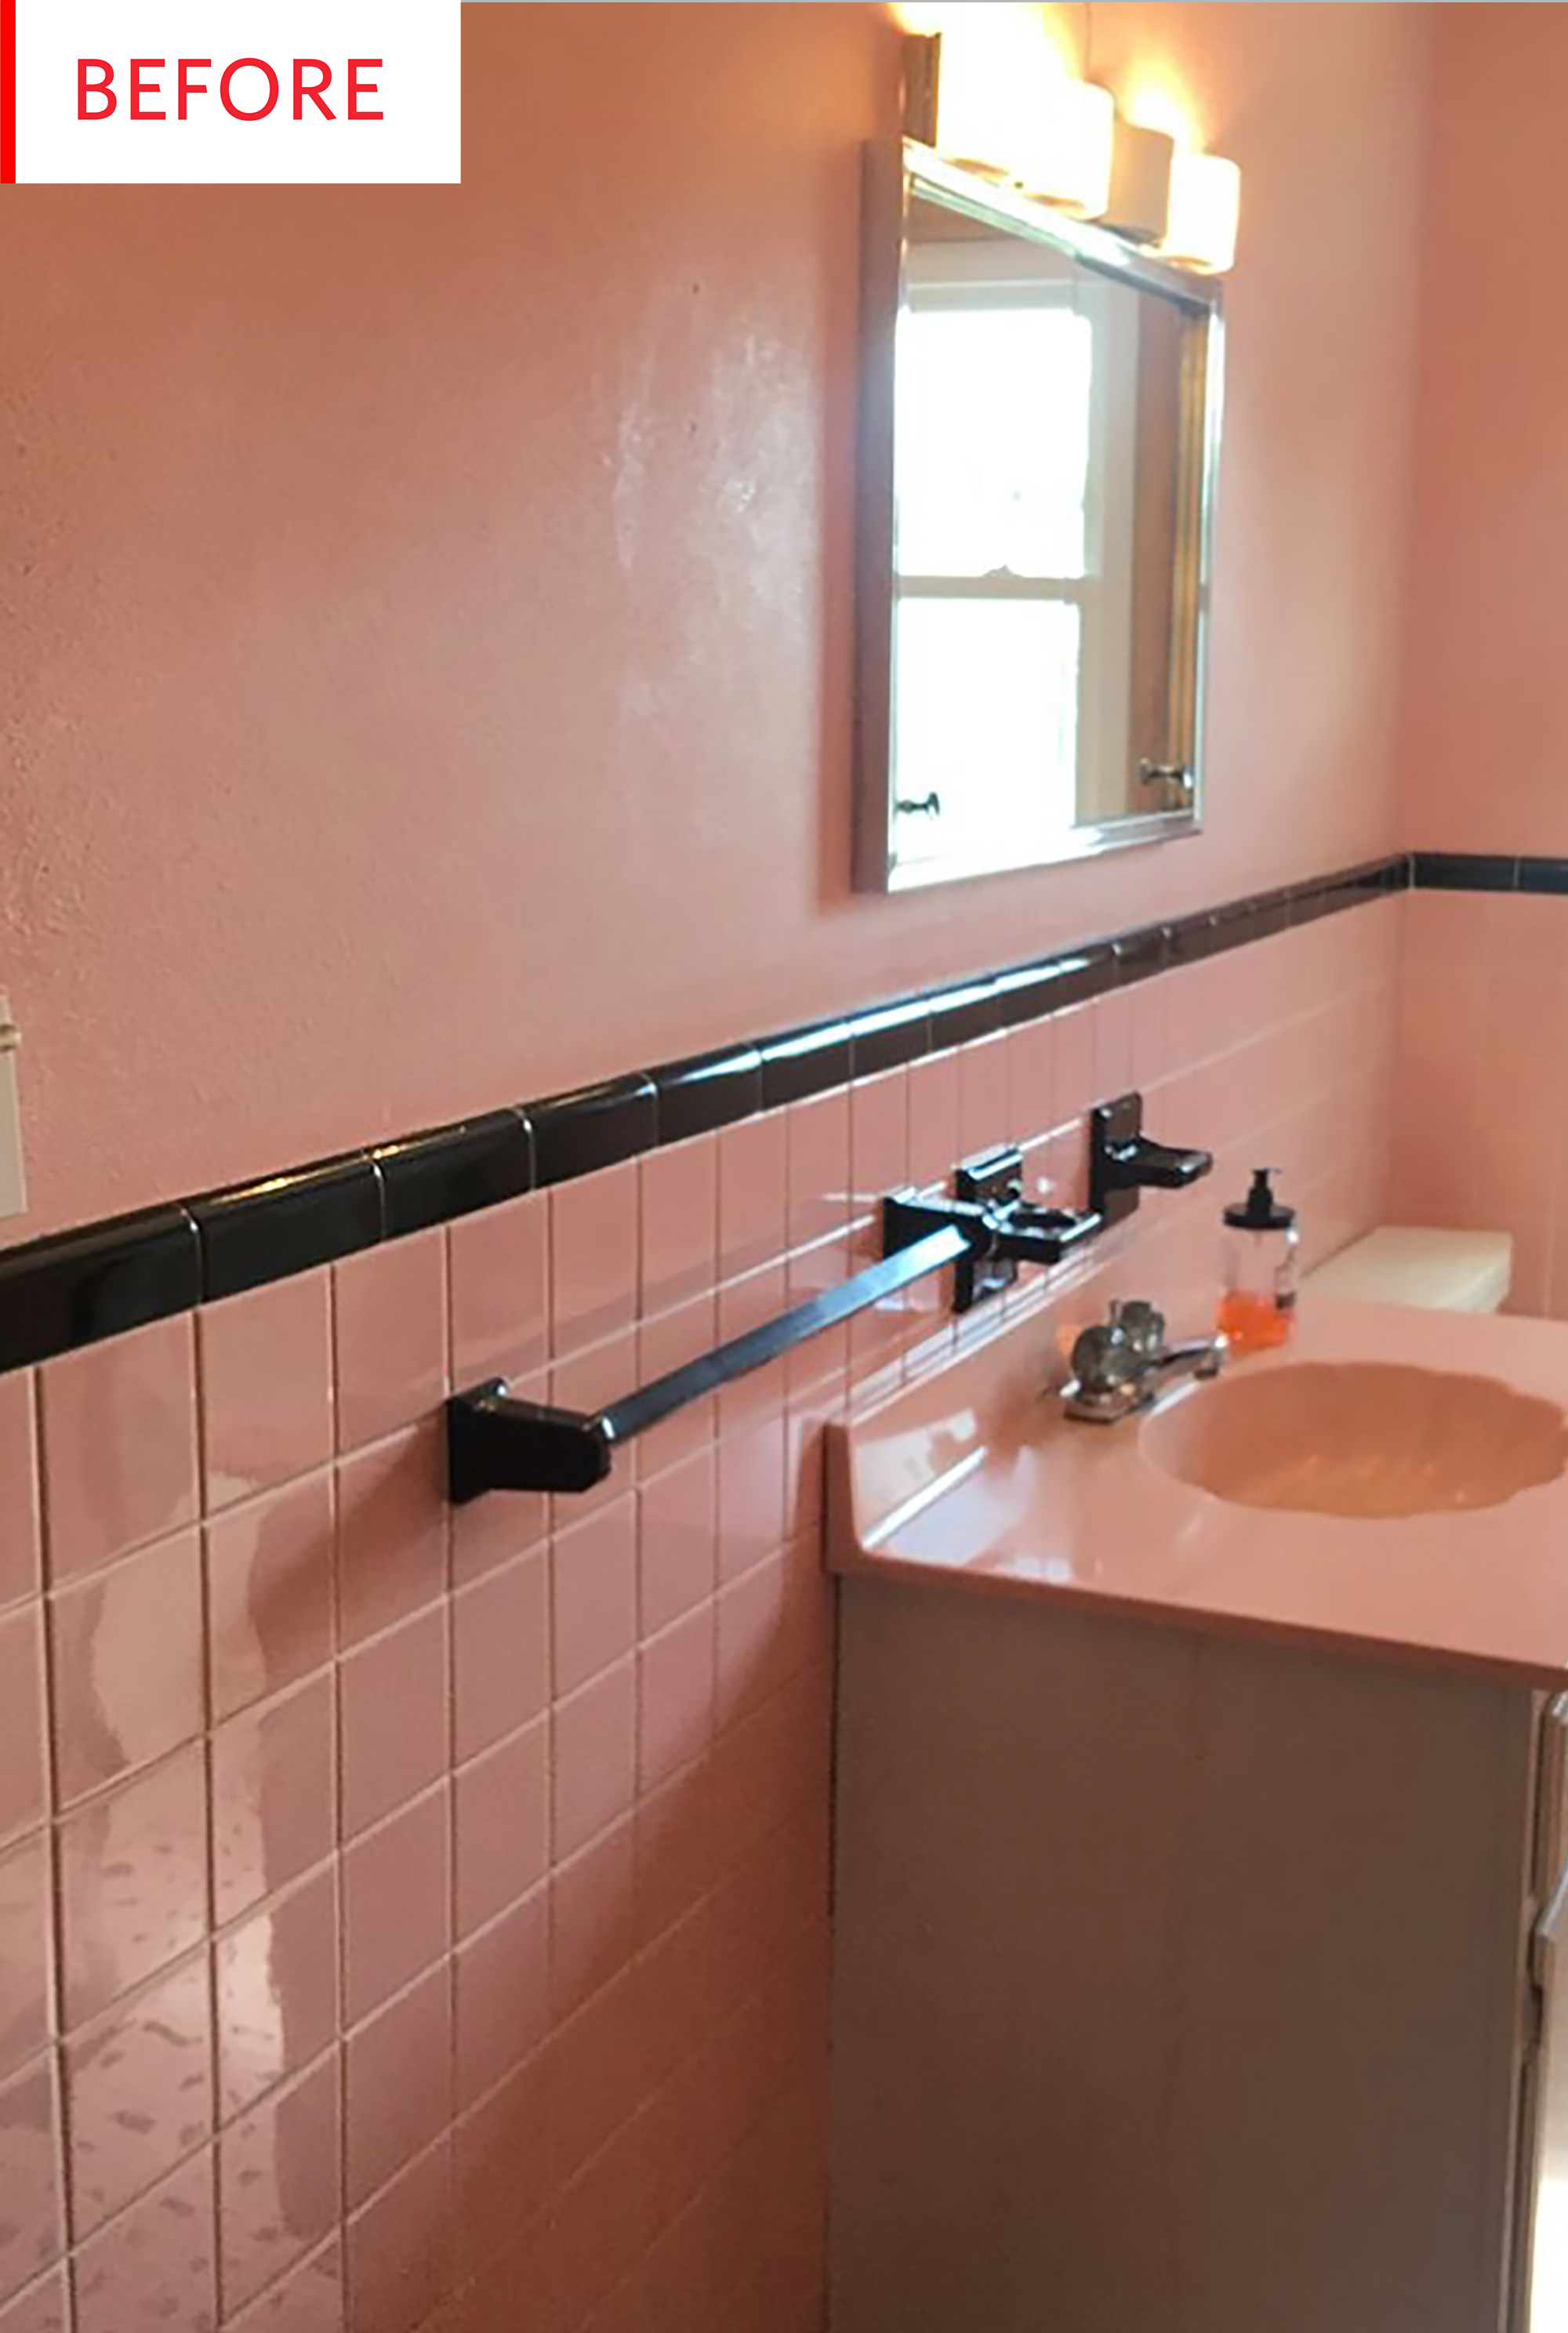 Bathroom Remodel Under 1000 Dollars Before And After Apartment